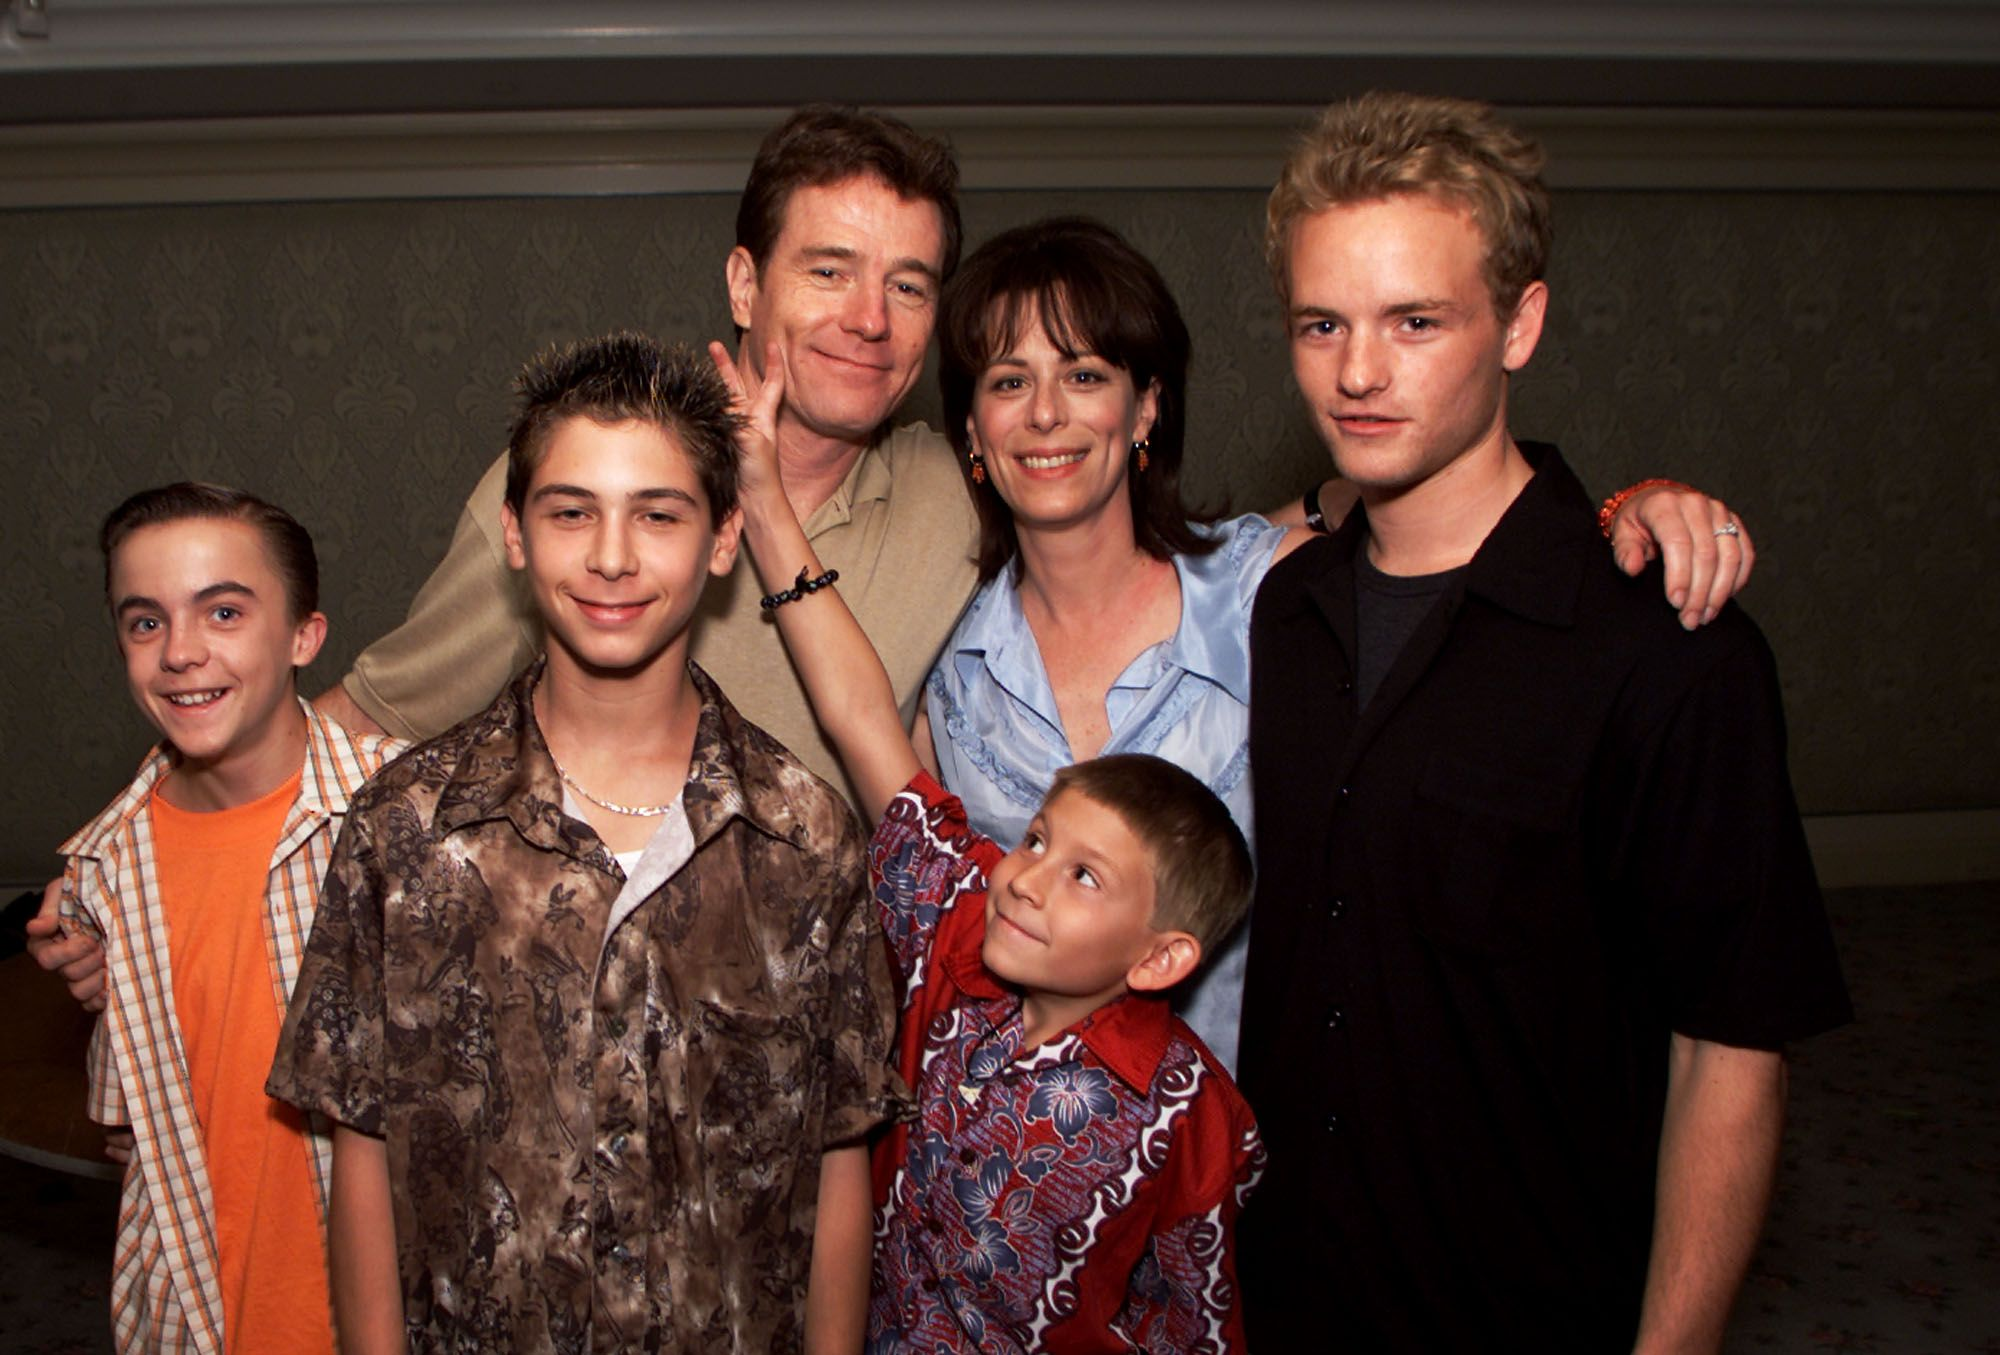 Frankie Muniz and his 'Malcolm in the Middle' costars